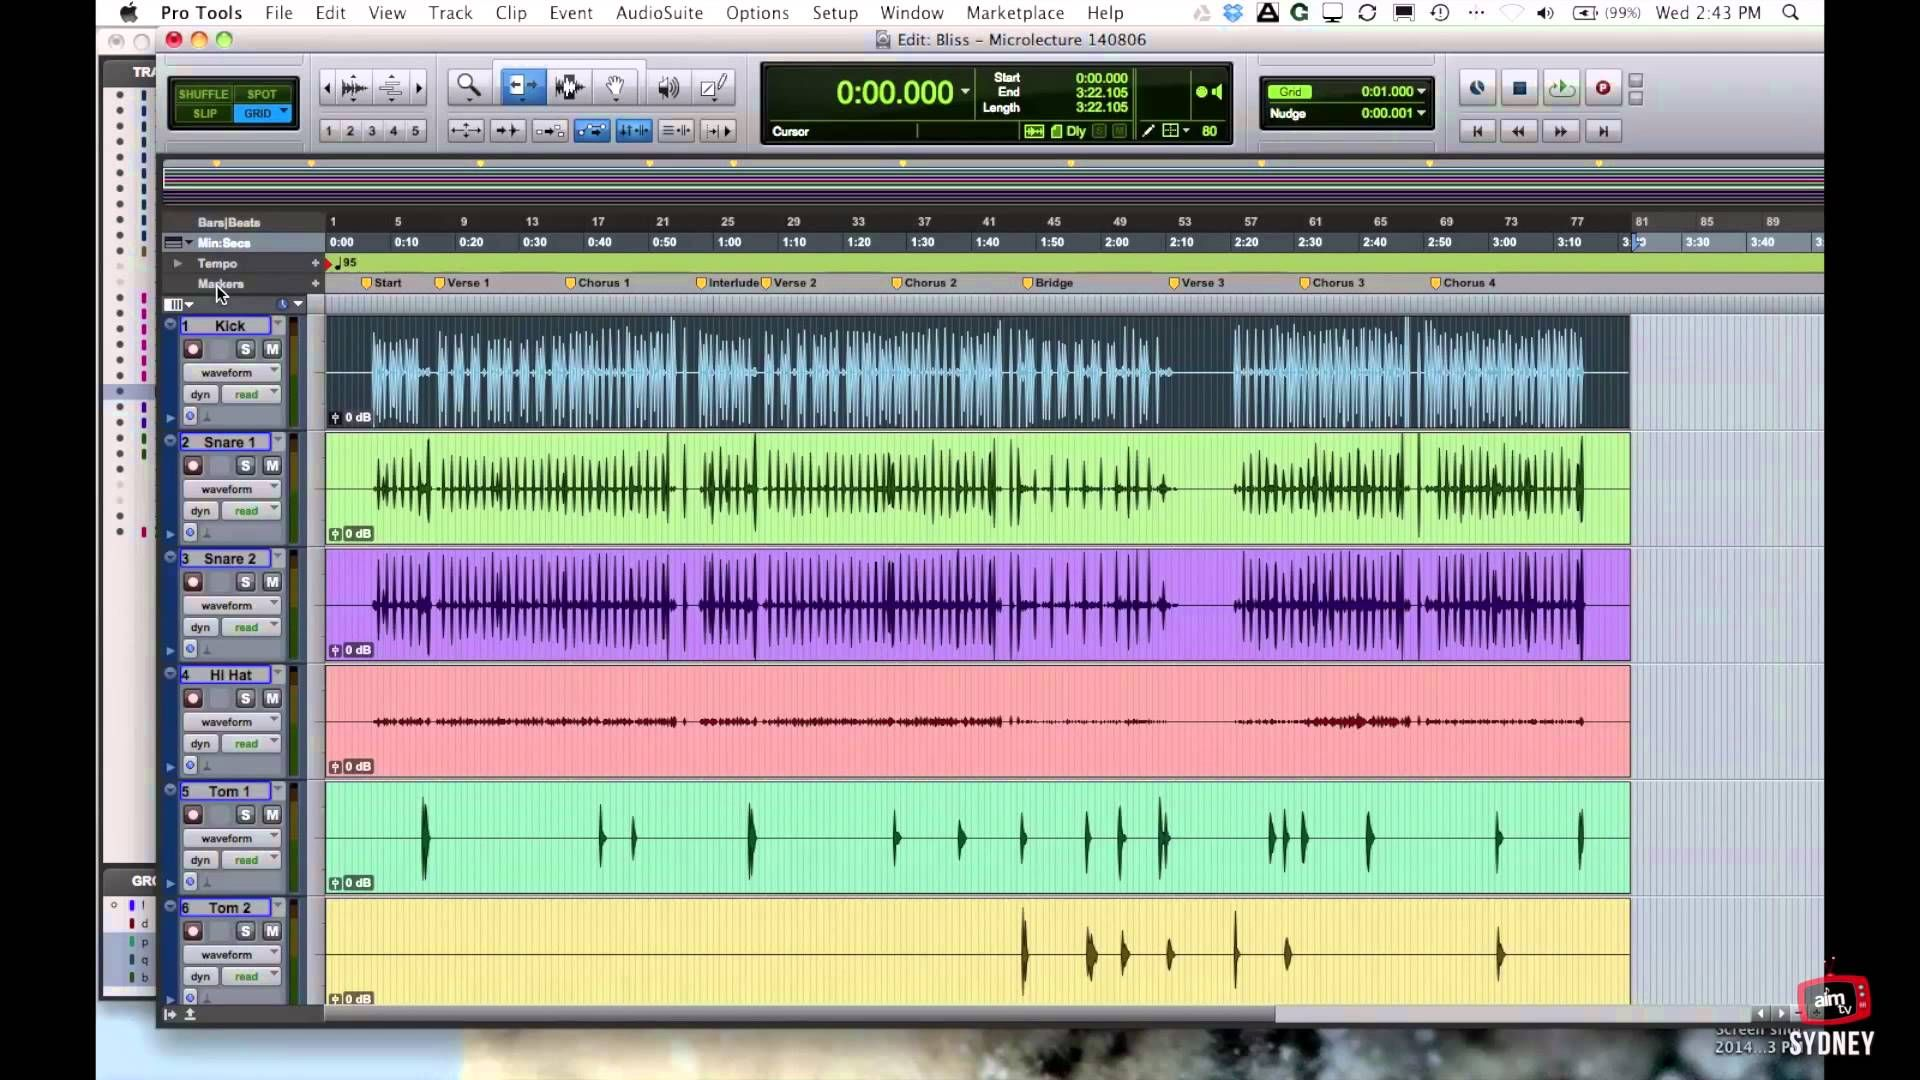 Pro tools for beginners tutorial part 1 navigation in 2020.